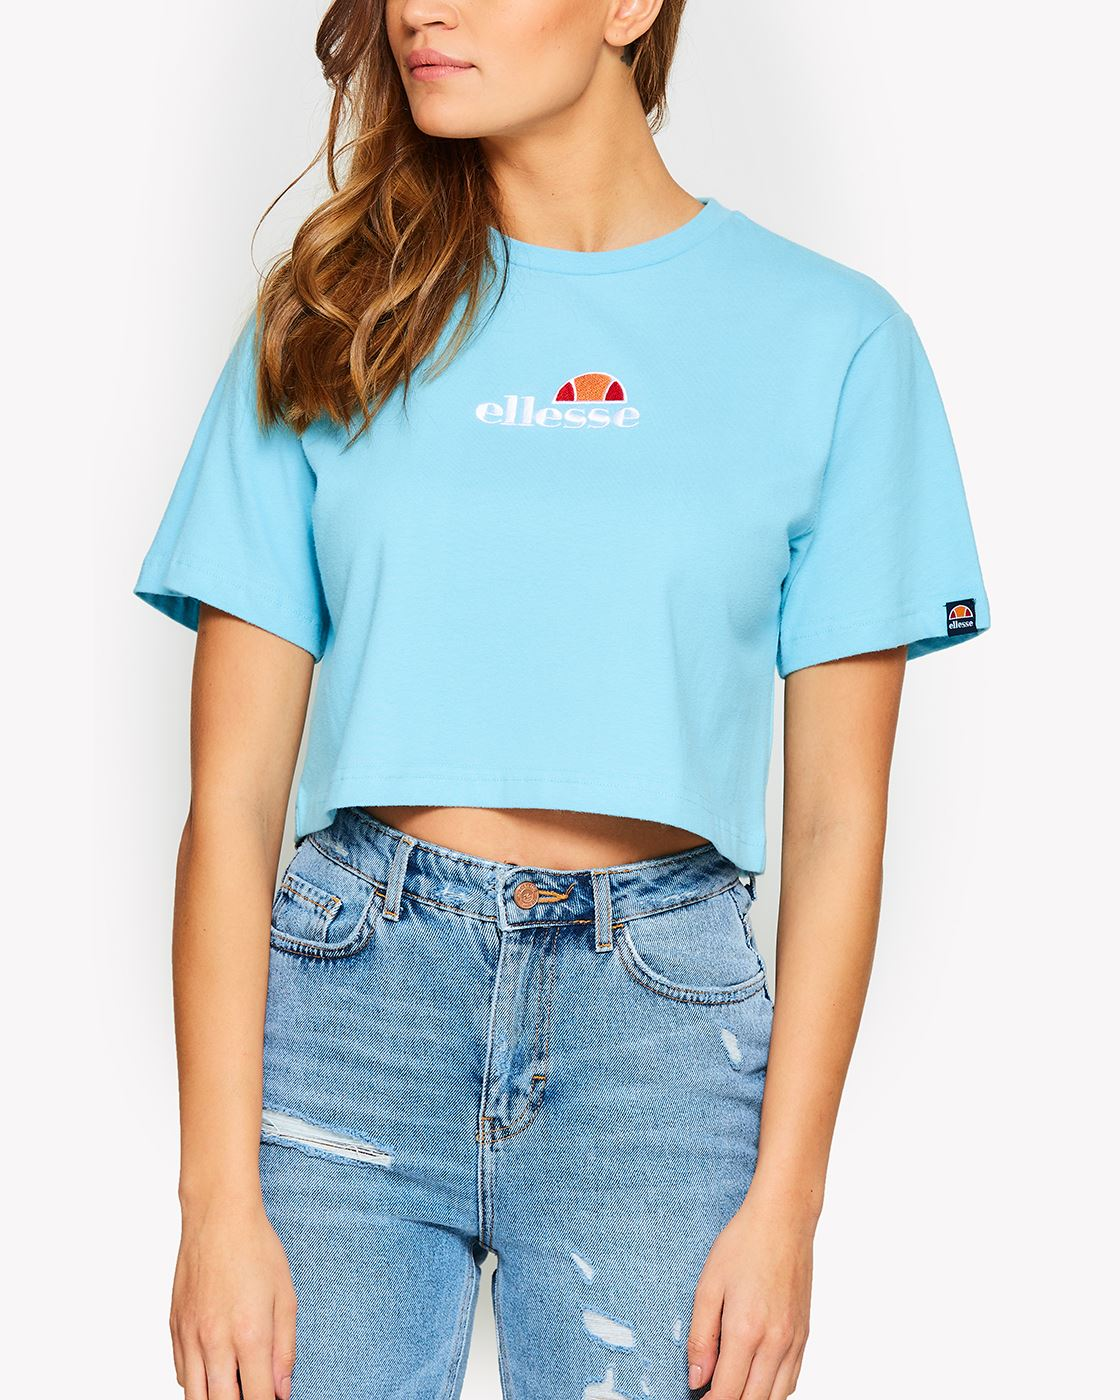 Ellesse-End-of-Line-Clearance-Sale-Bargain-Womens-Tops-T-Shirts-Free-UK-Ship thumbnail 22